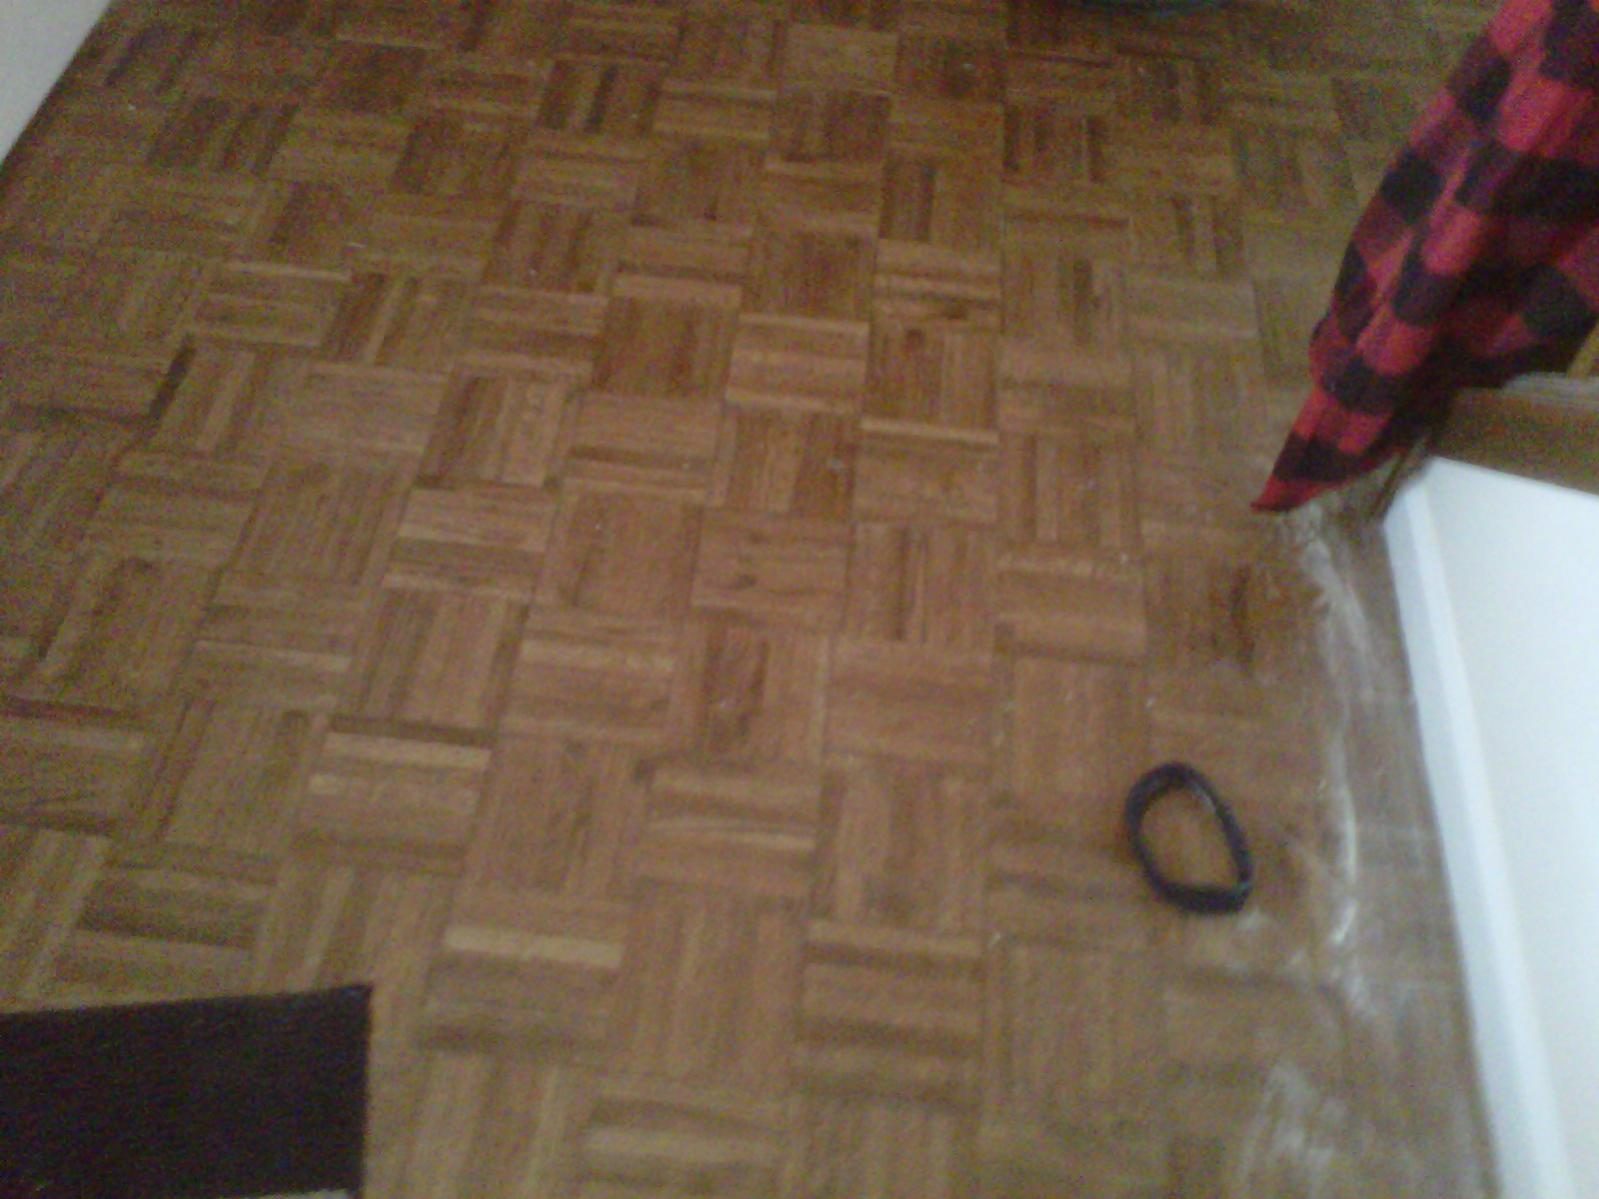 New Life Into A Parquet Floor - Flooring - Contractor Talk